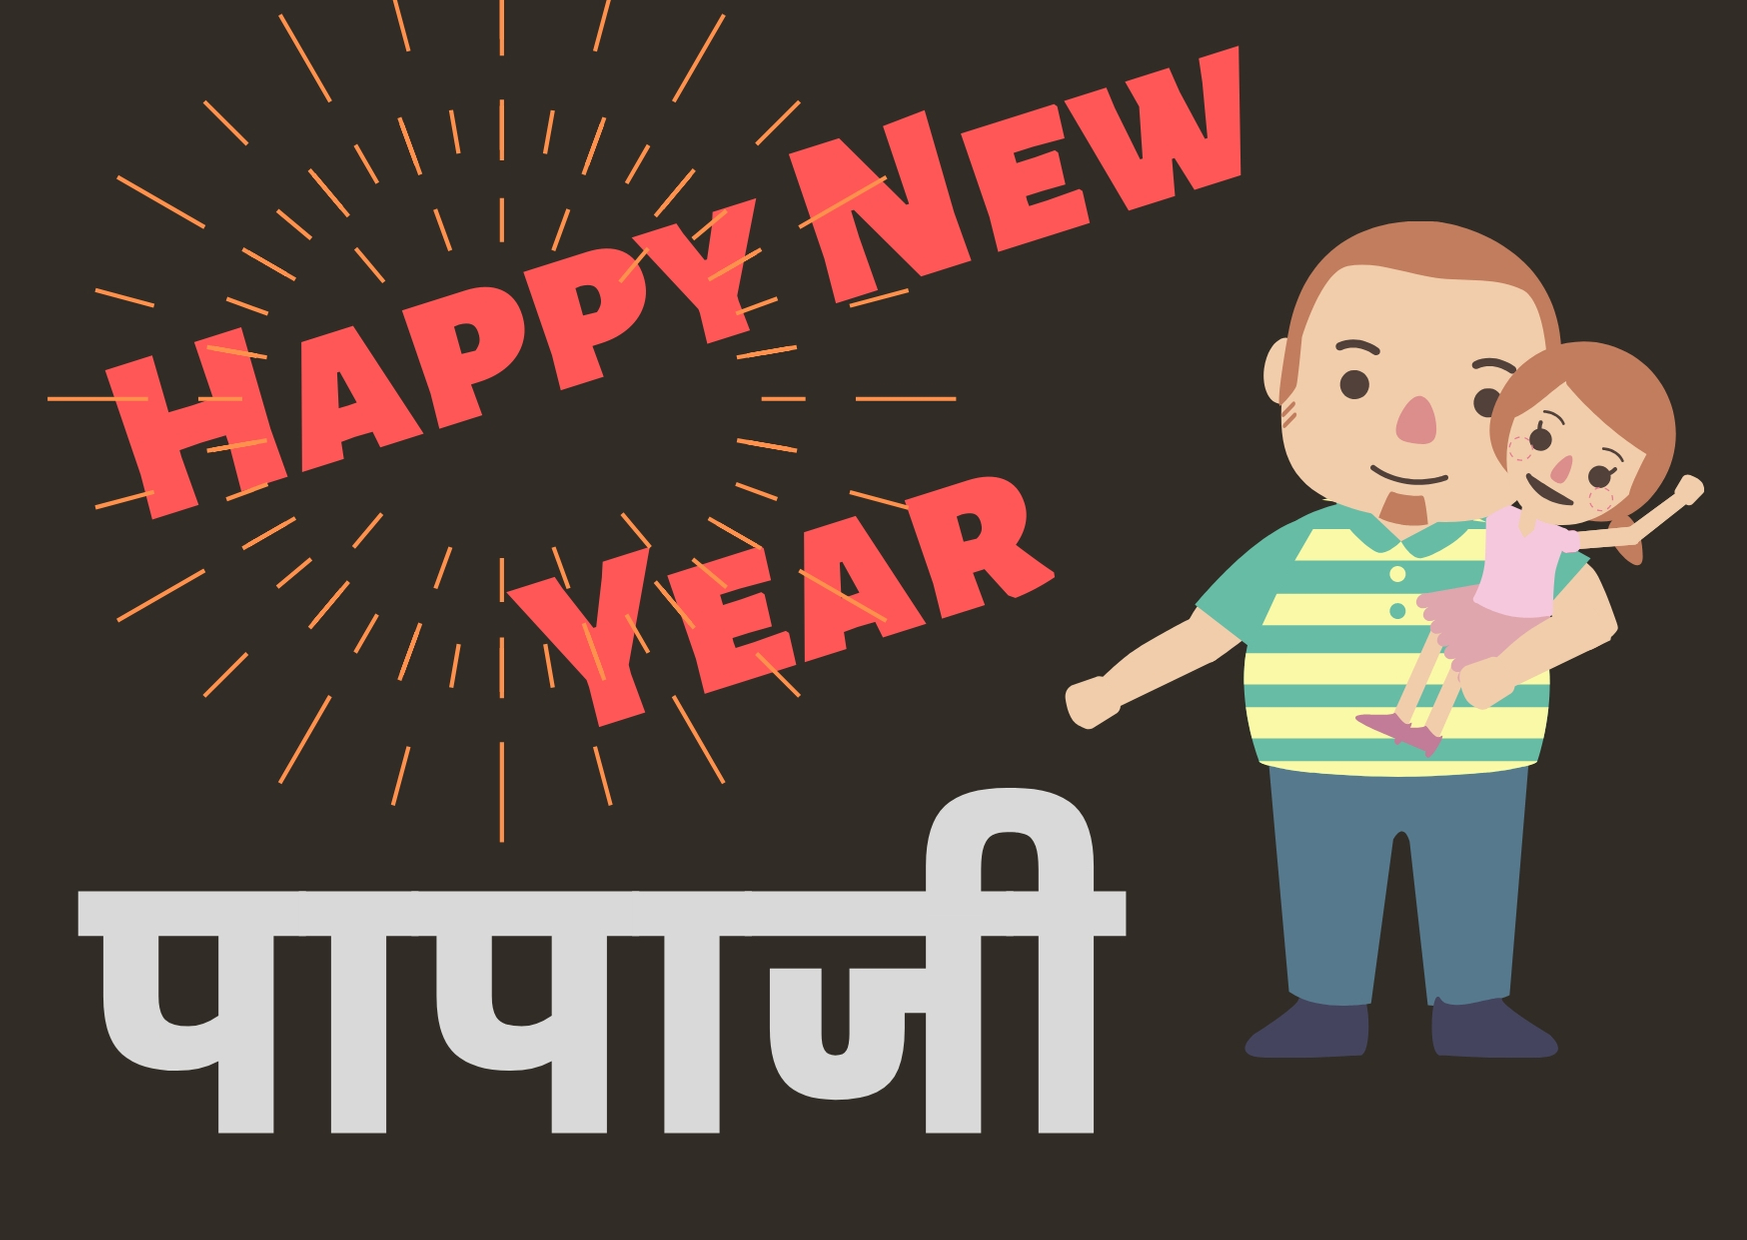 Happy New Year 2021 wishes for Father